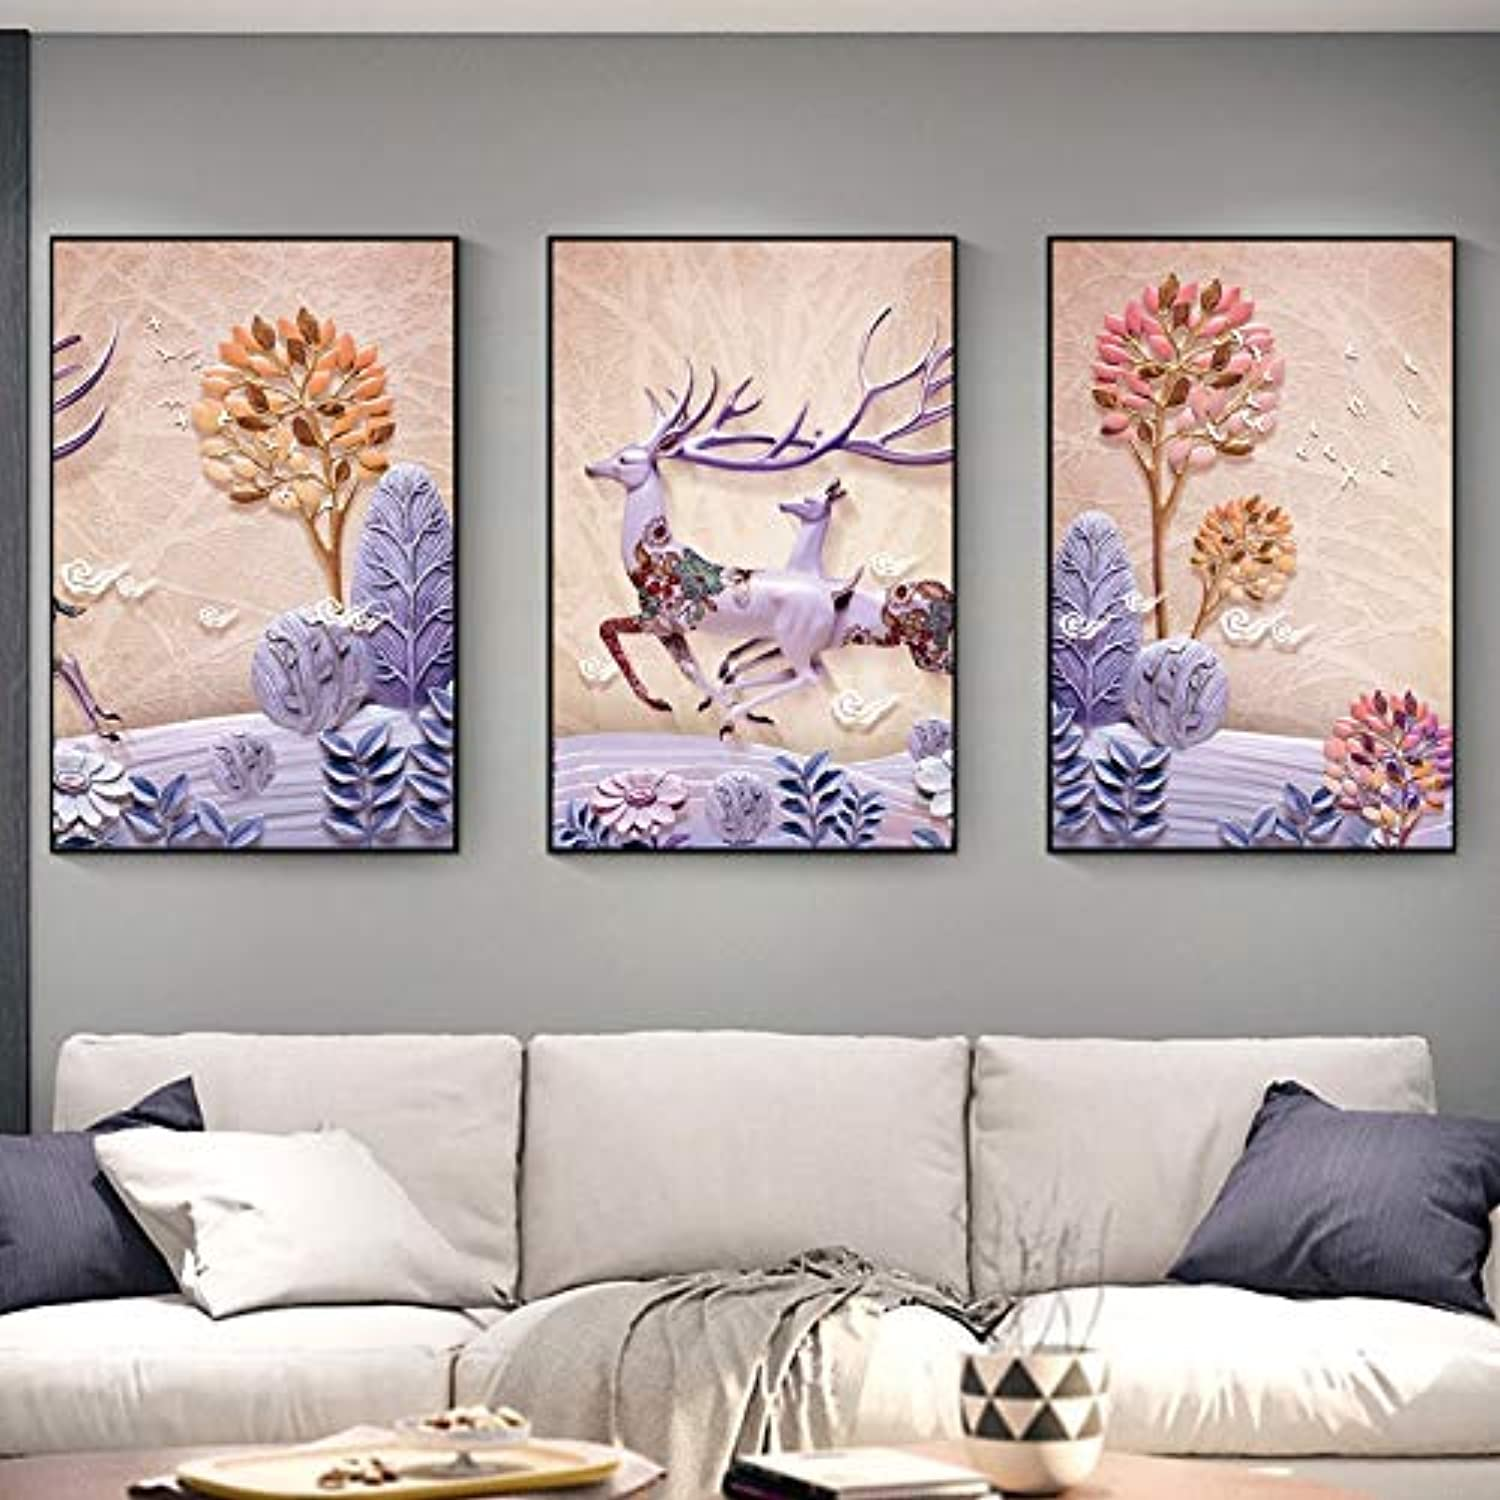 WENJUN Wall Art Picture 3 Pieces Wall Art Image For Living Room Home Decor Abstract Canvas Painting Print Black Frame Art On Canvas,Art Print Images,5 colors,4 Sizes ( color   A , Size   6080 )